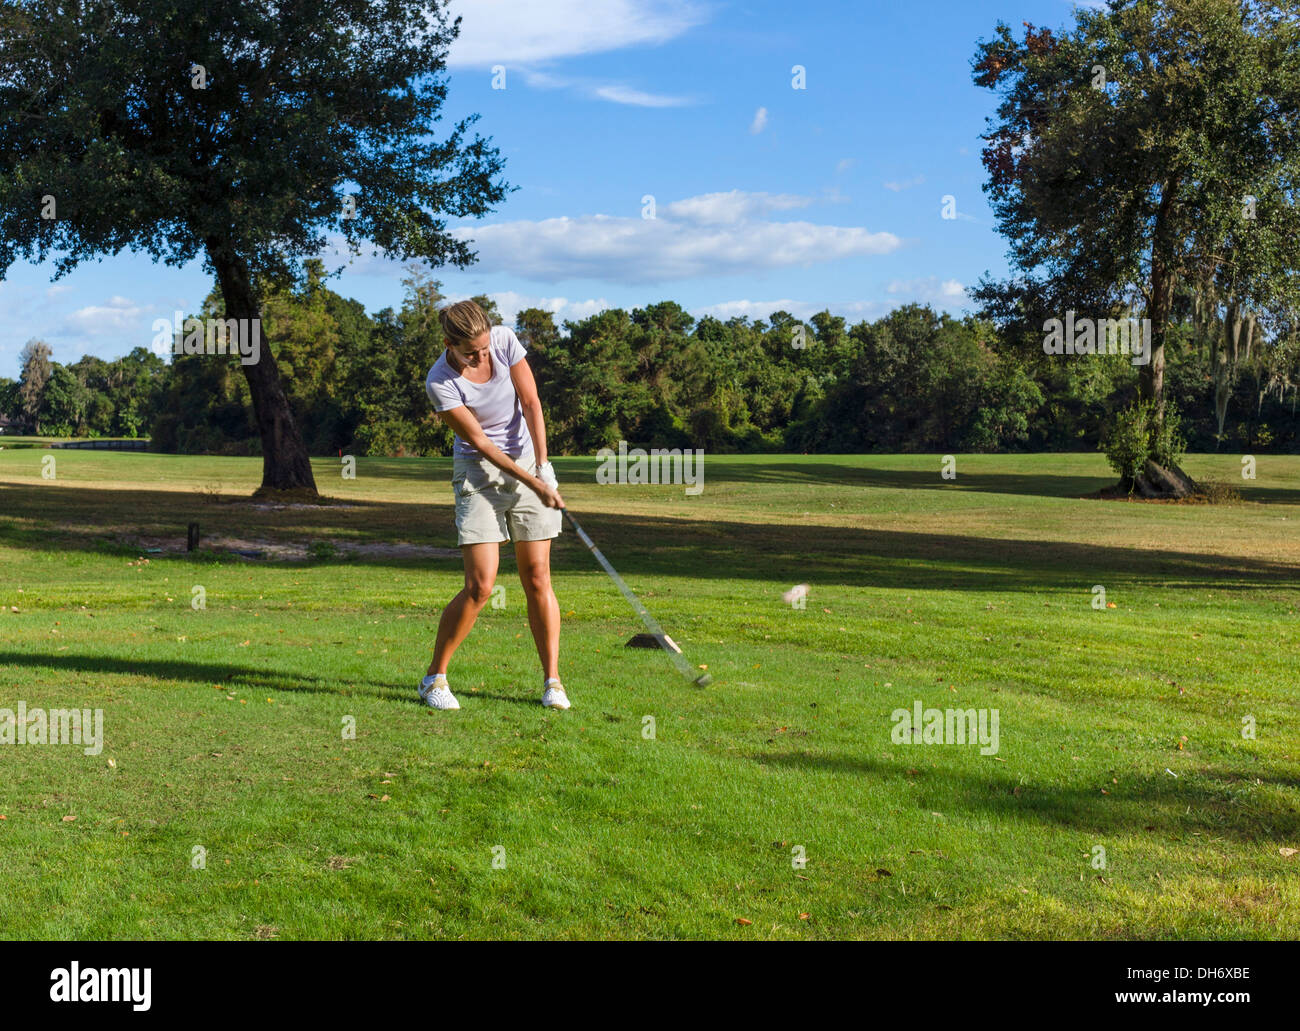 Young woman teeing off on a golf course at the Grenelefe Resort, Haines City, Central Florida, USA - Stock Image